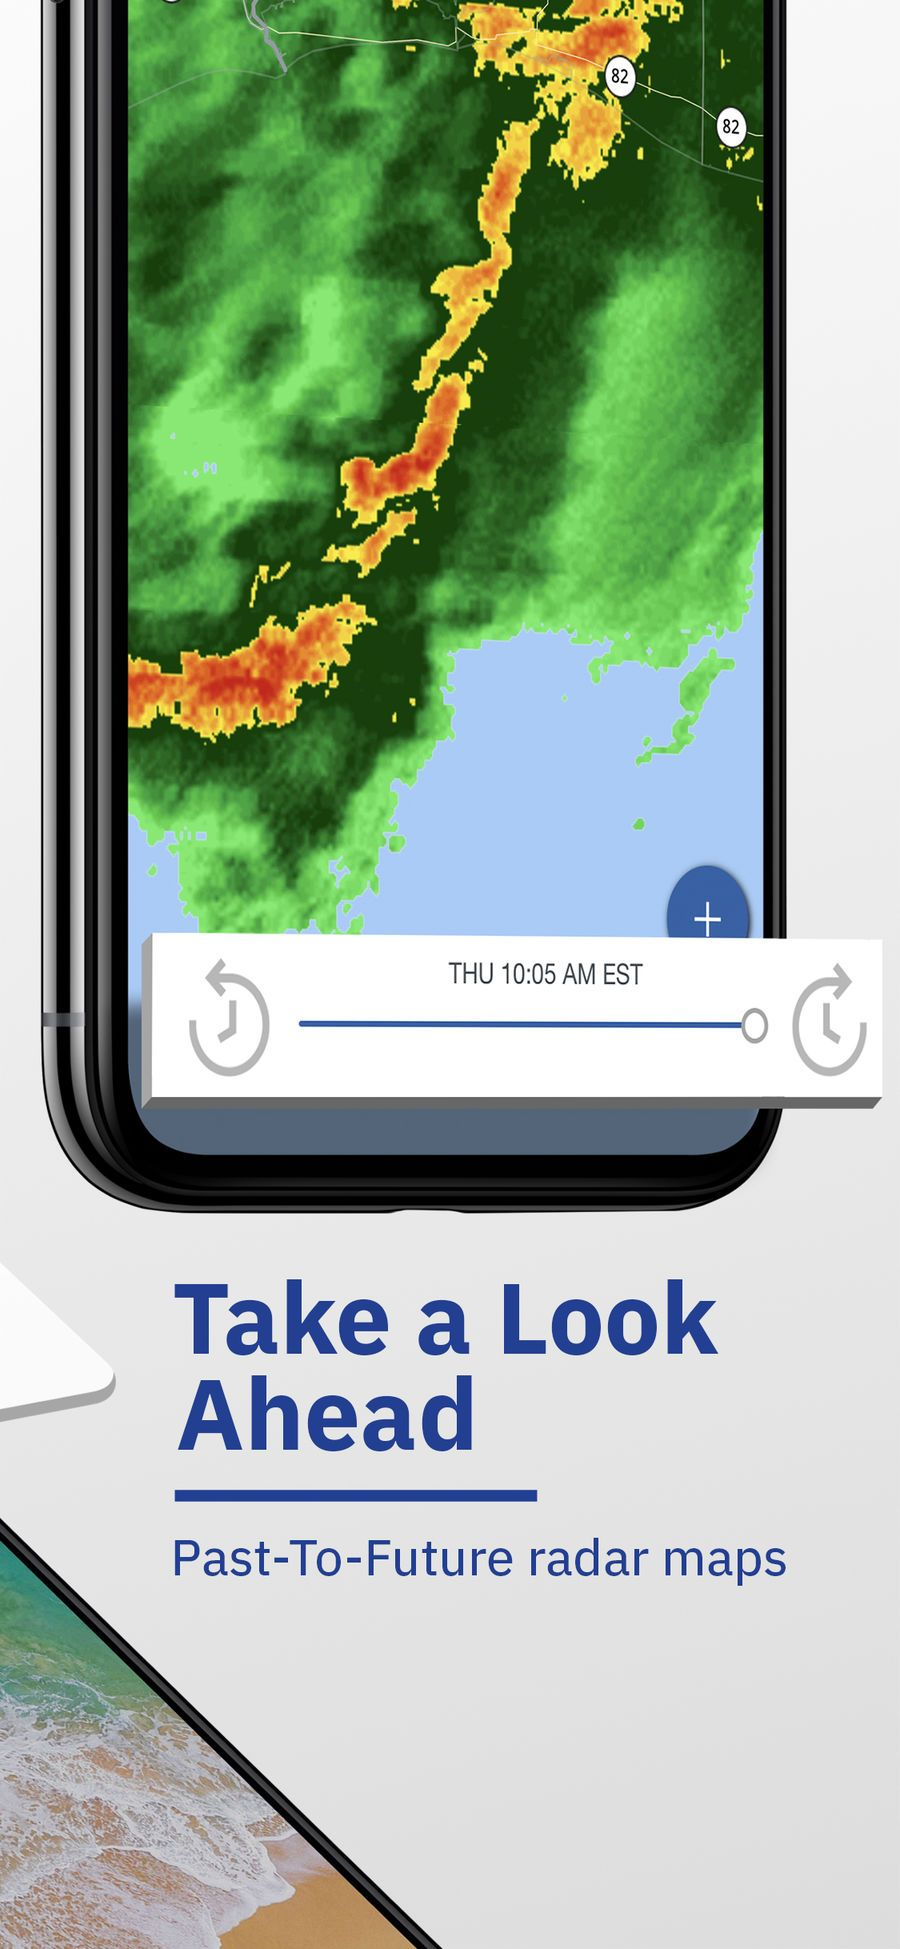 The Weather Channel Tracker Ios Lifestyle App Apps The Weather Channel Lifestyle Apps Weather